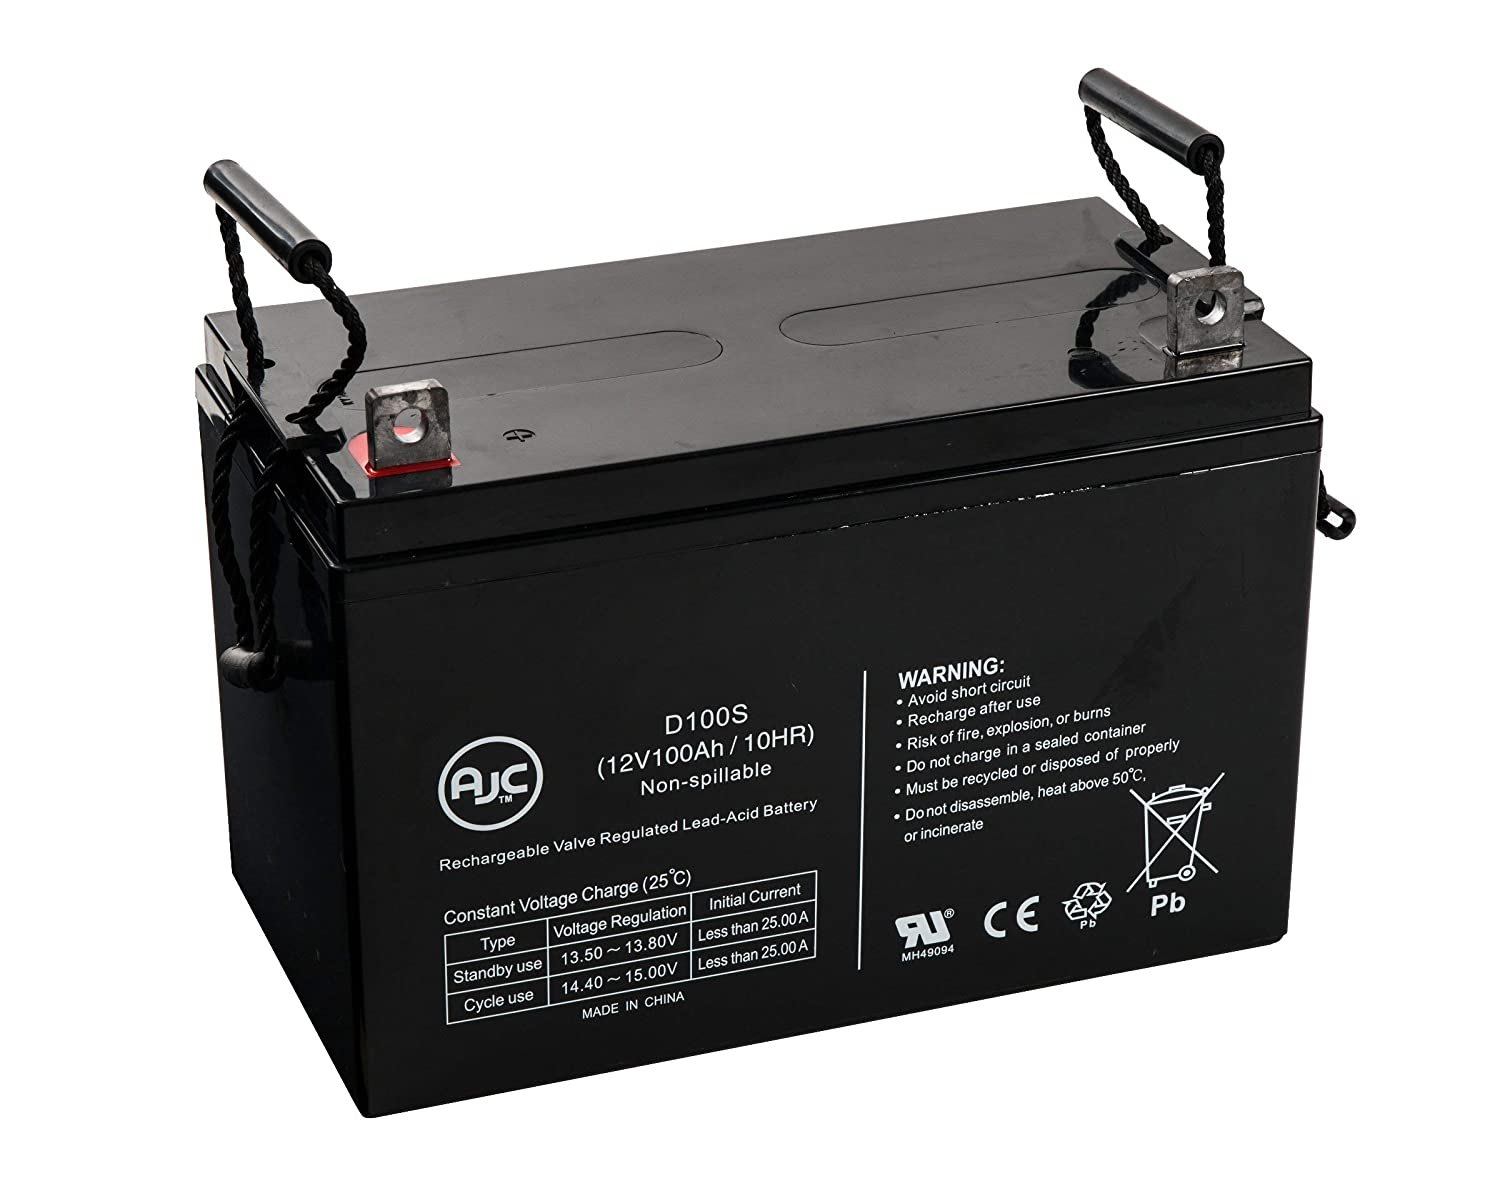 Universal Power UB121000 45978 12V 100Ah Sealed Lead Acid Battery - This is an AJC Brand Replacement AJC Battery